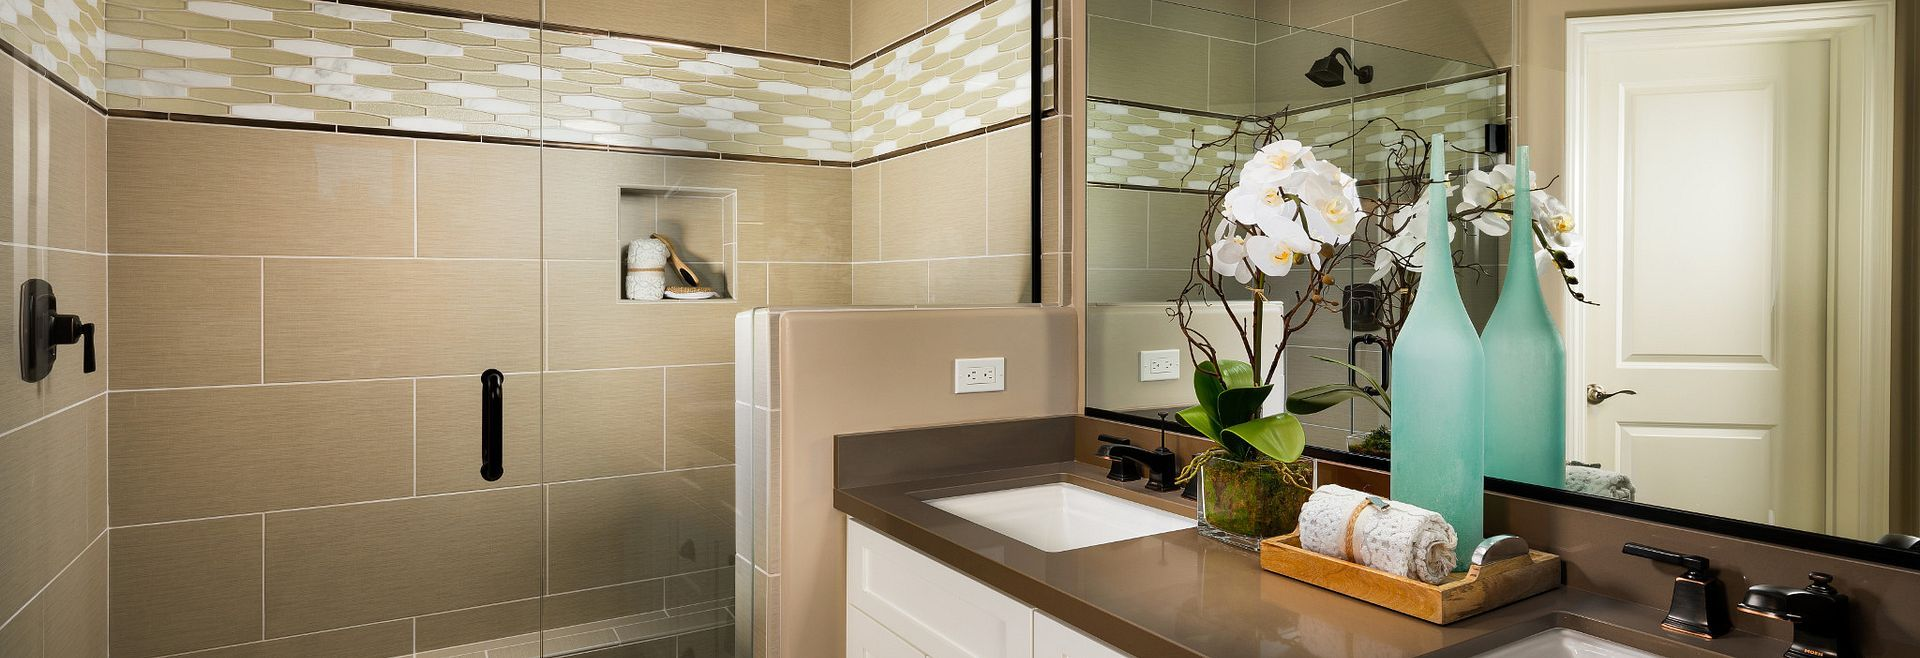 Bathroom featured in the Acacia By Shea Homes - Trilogy in Santa Barbara, CA